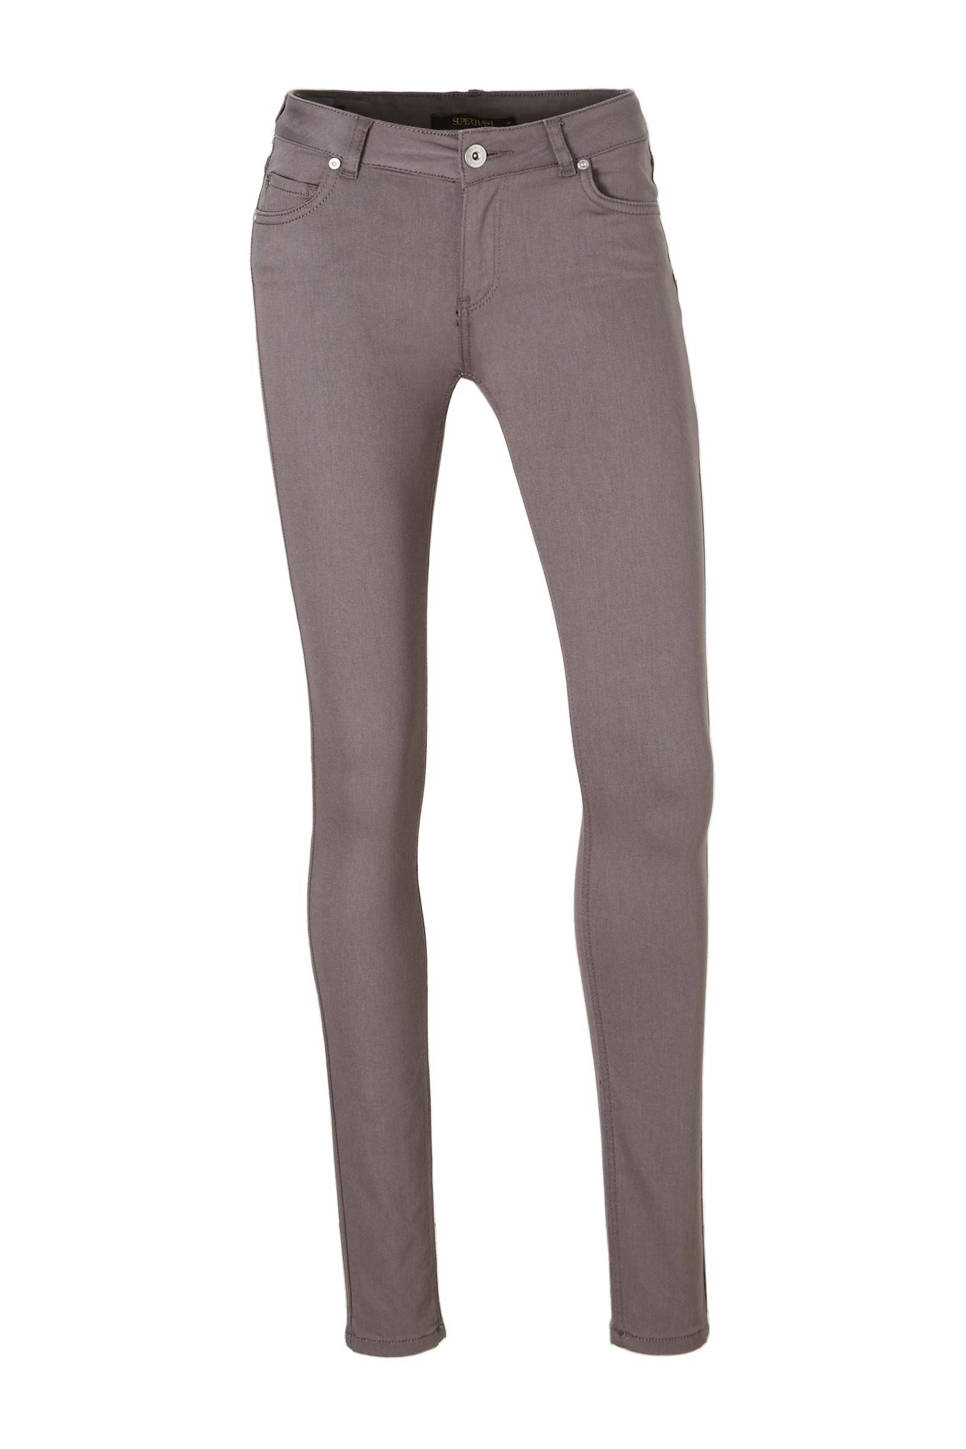 Supertrash paradise skinny fit jeans, Antraciet